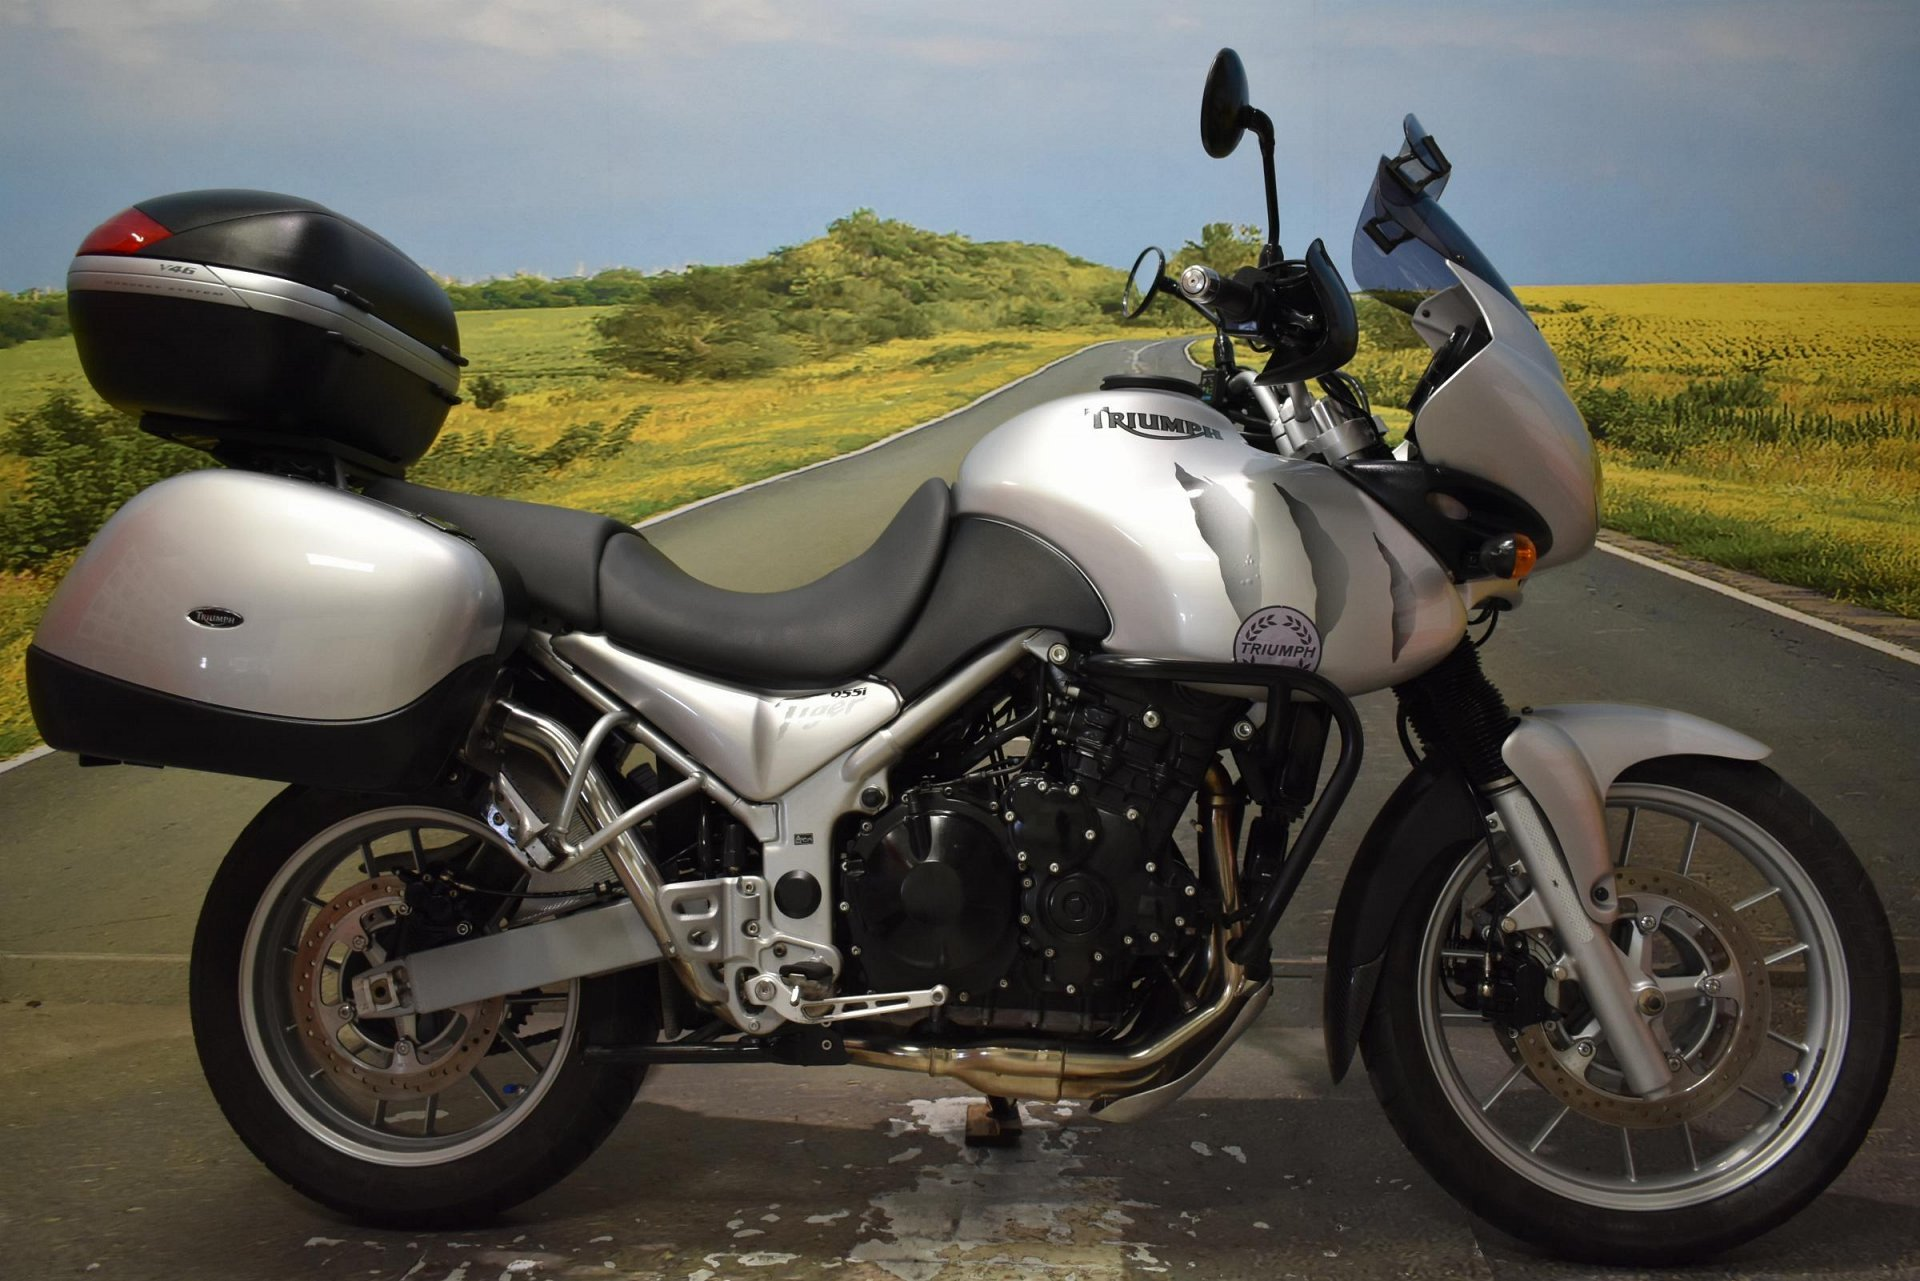 2007 Triumph Tiger 955i for sale in Derbyshire